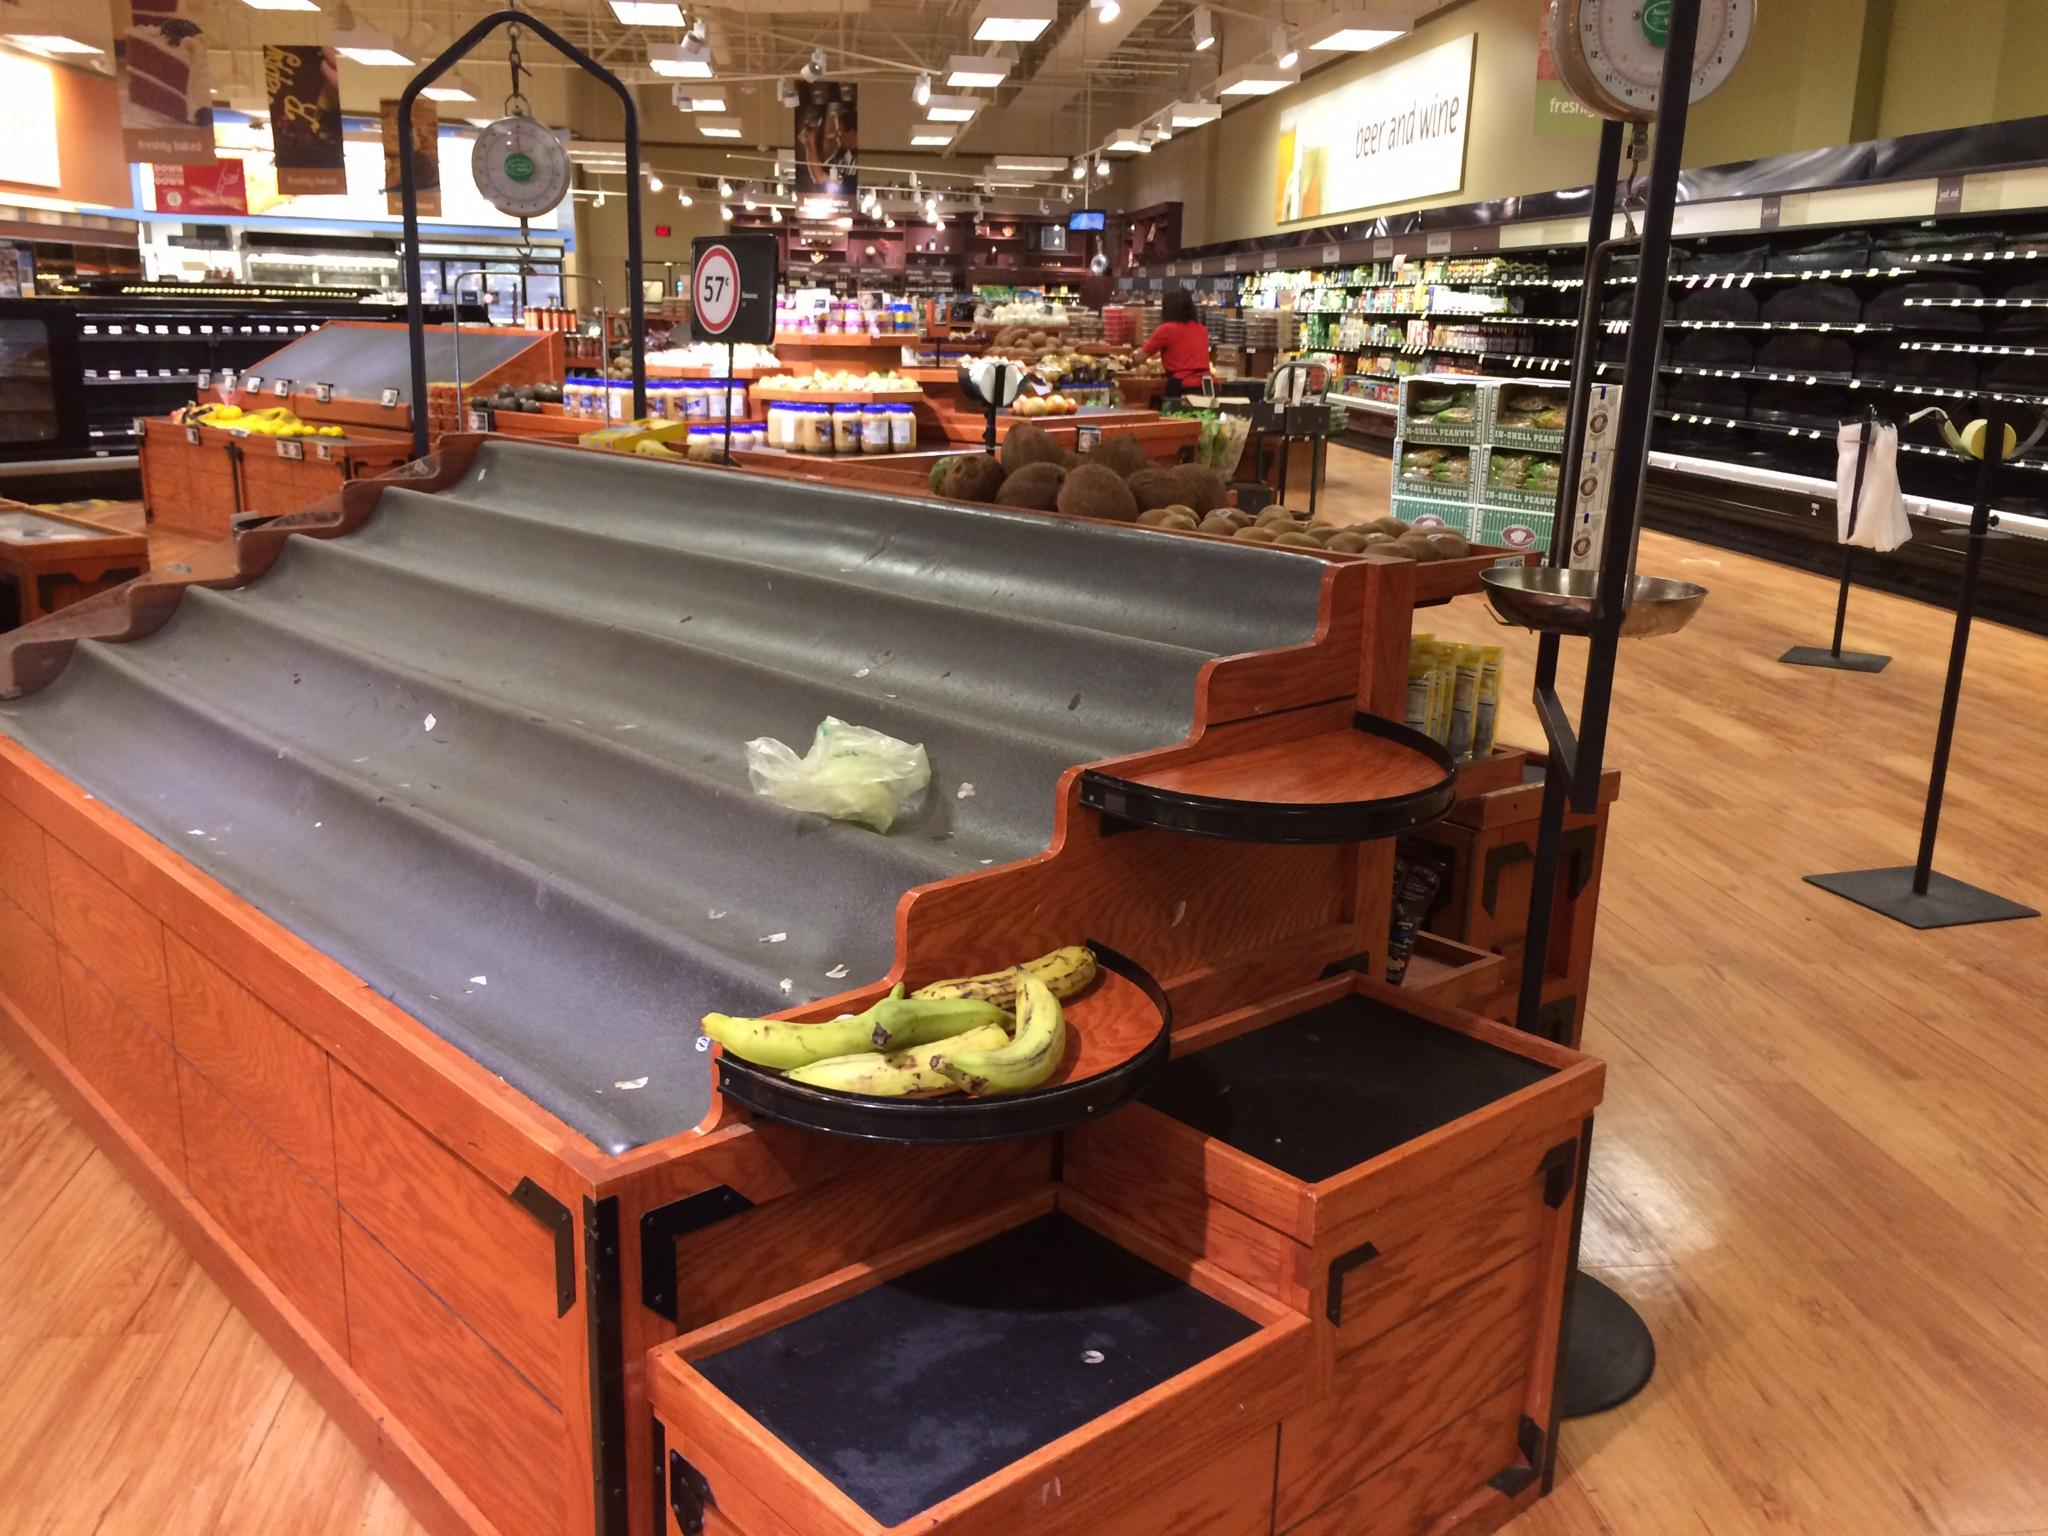 Store shelves left bare in preparation for the storm